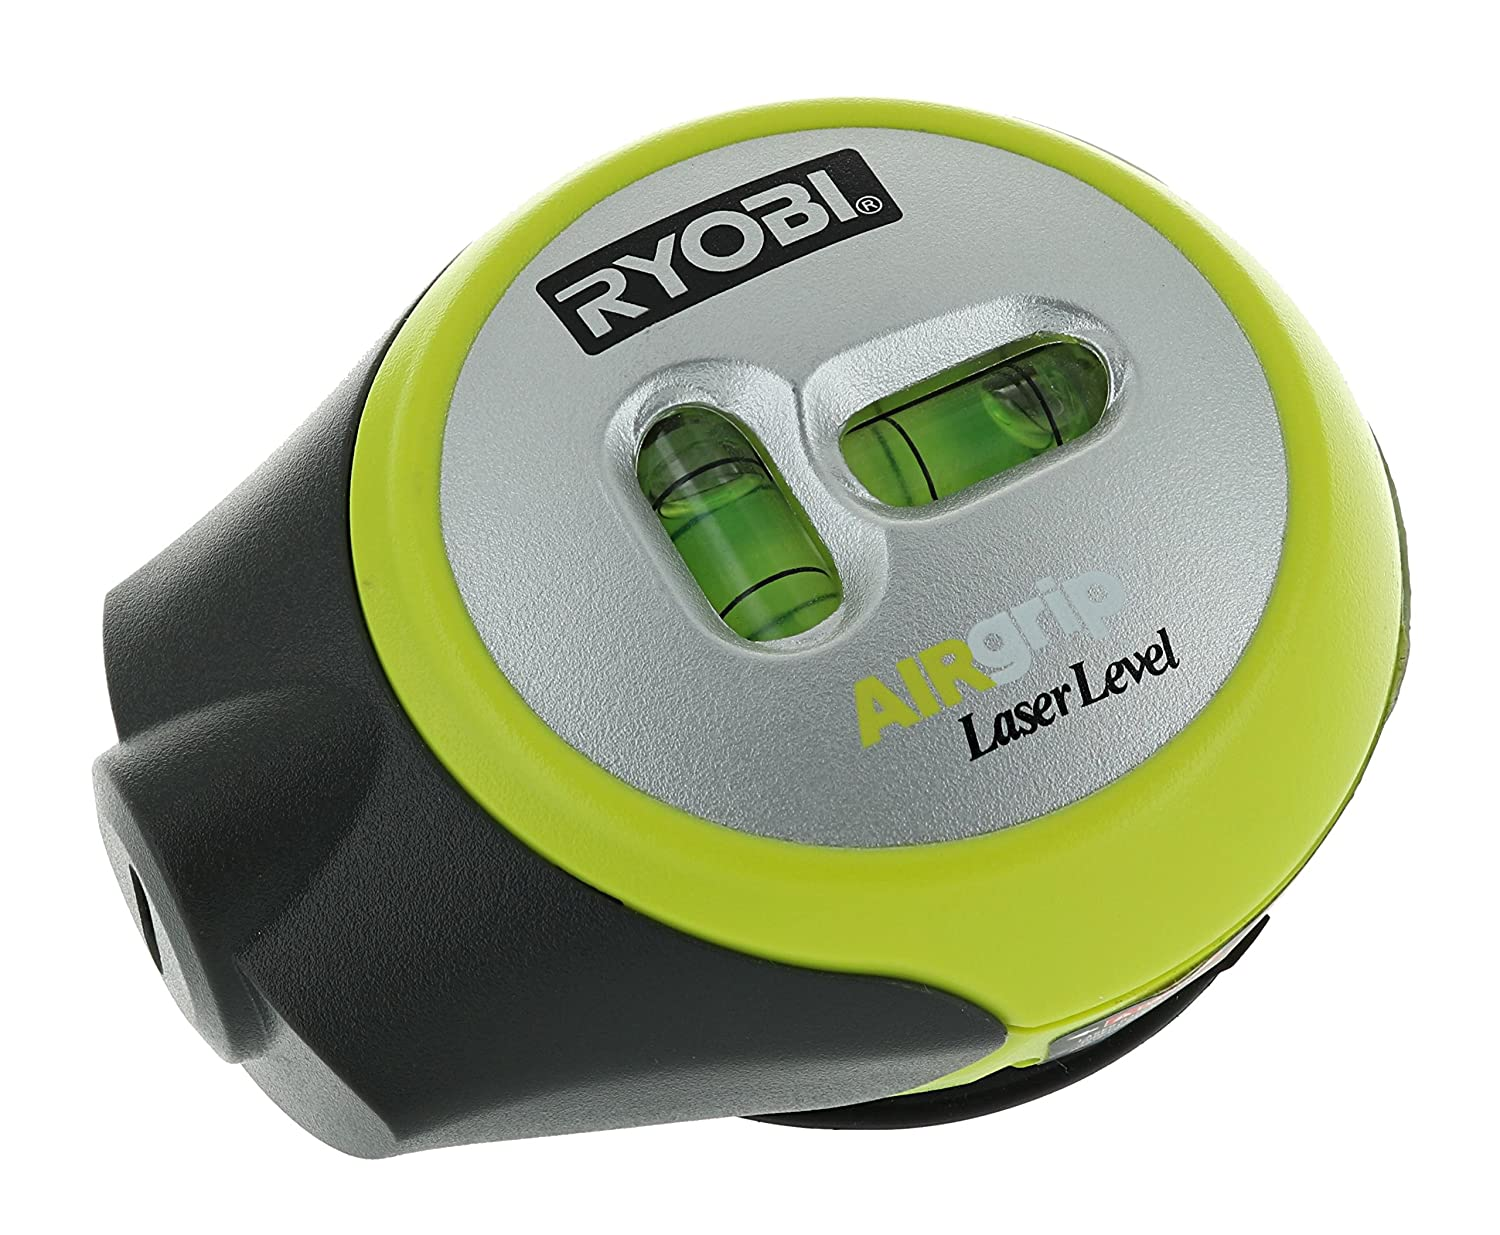 Ryobi ELL1002 Air Grip Compact Laser Level with Tripod Mounting and Corner Rounding Capability AAA Batteries Included